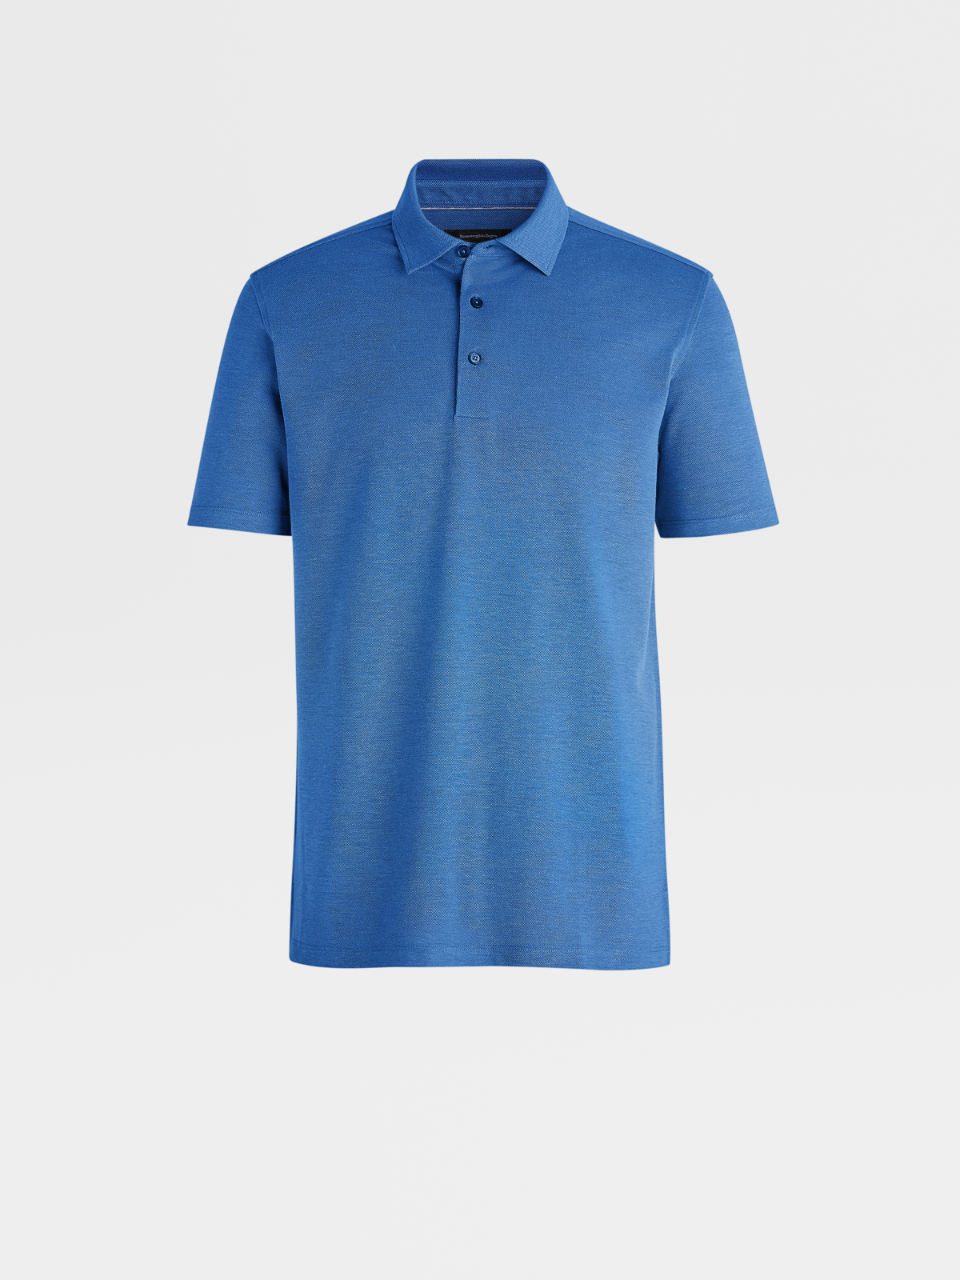 Bluette Cotton/Silk Polo